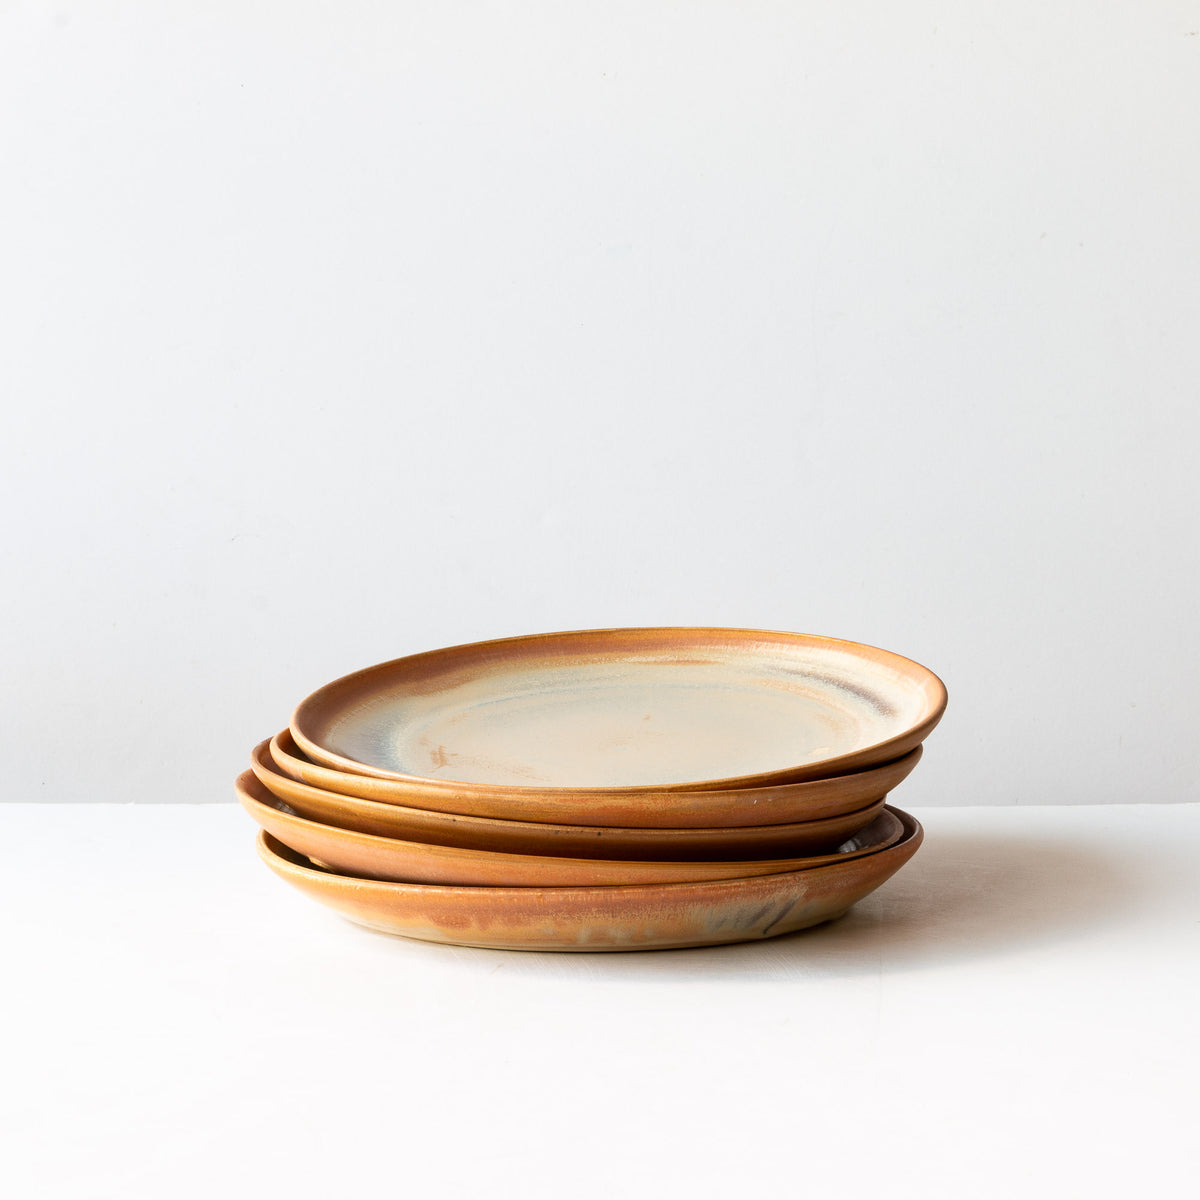 A Pile of Handmade Stoneware Dinner Plates - Barley Corn Colour - Sold by Chic & Basta